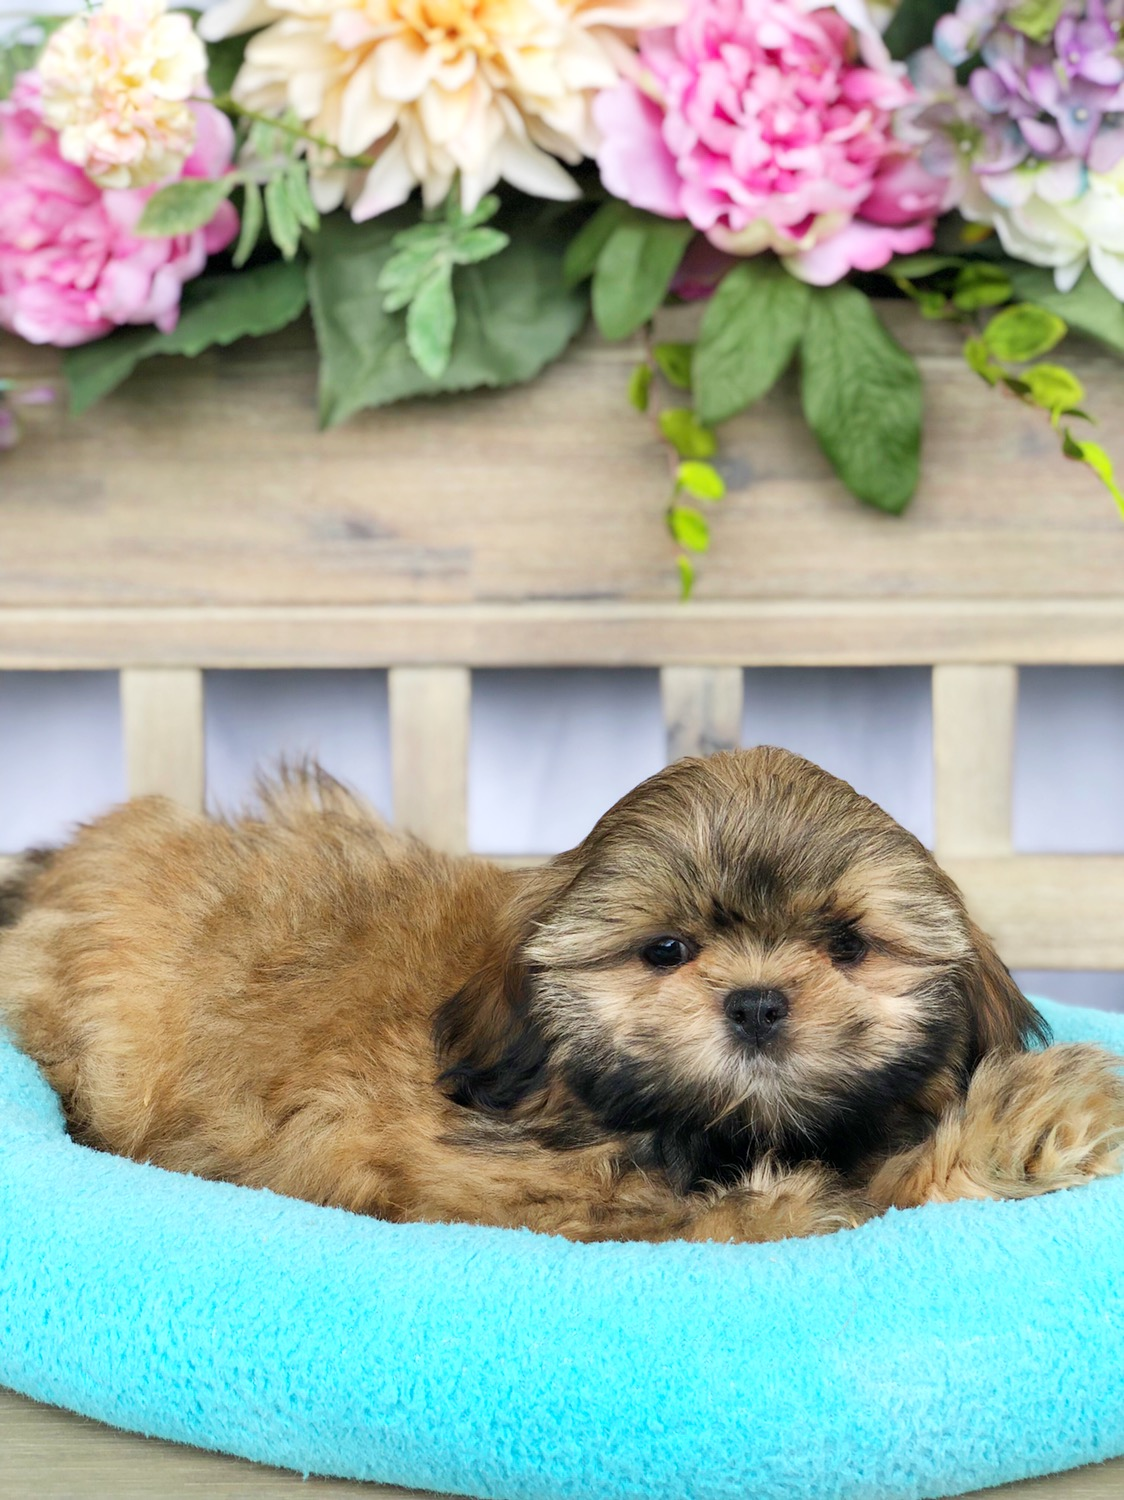 Shih-tzu For Sale in Lynchburg, VA - Local Pet Store | Petopia